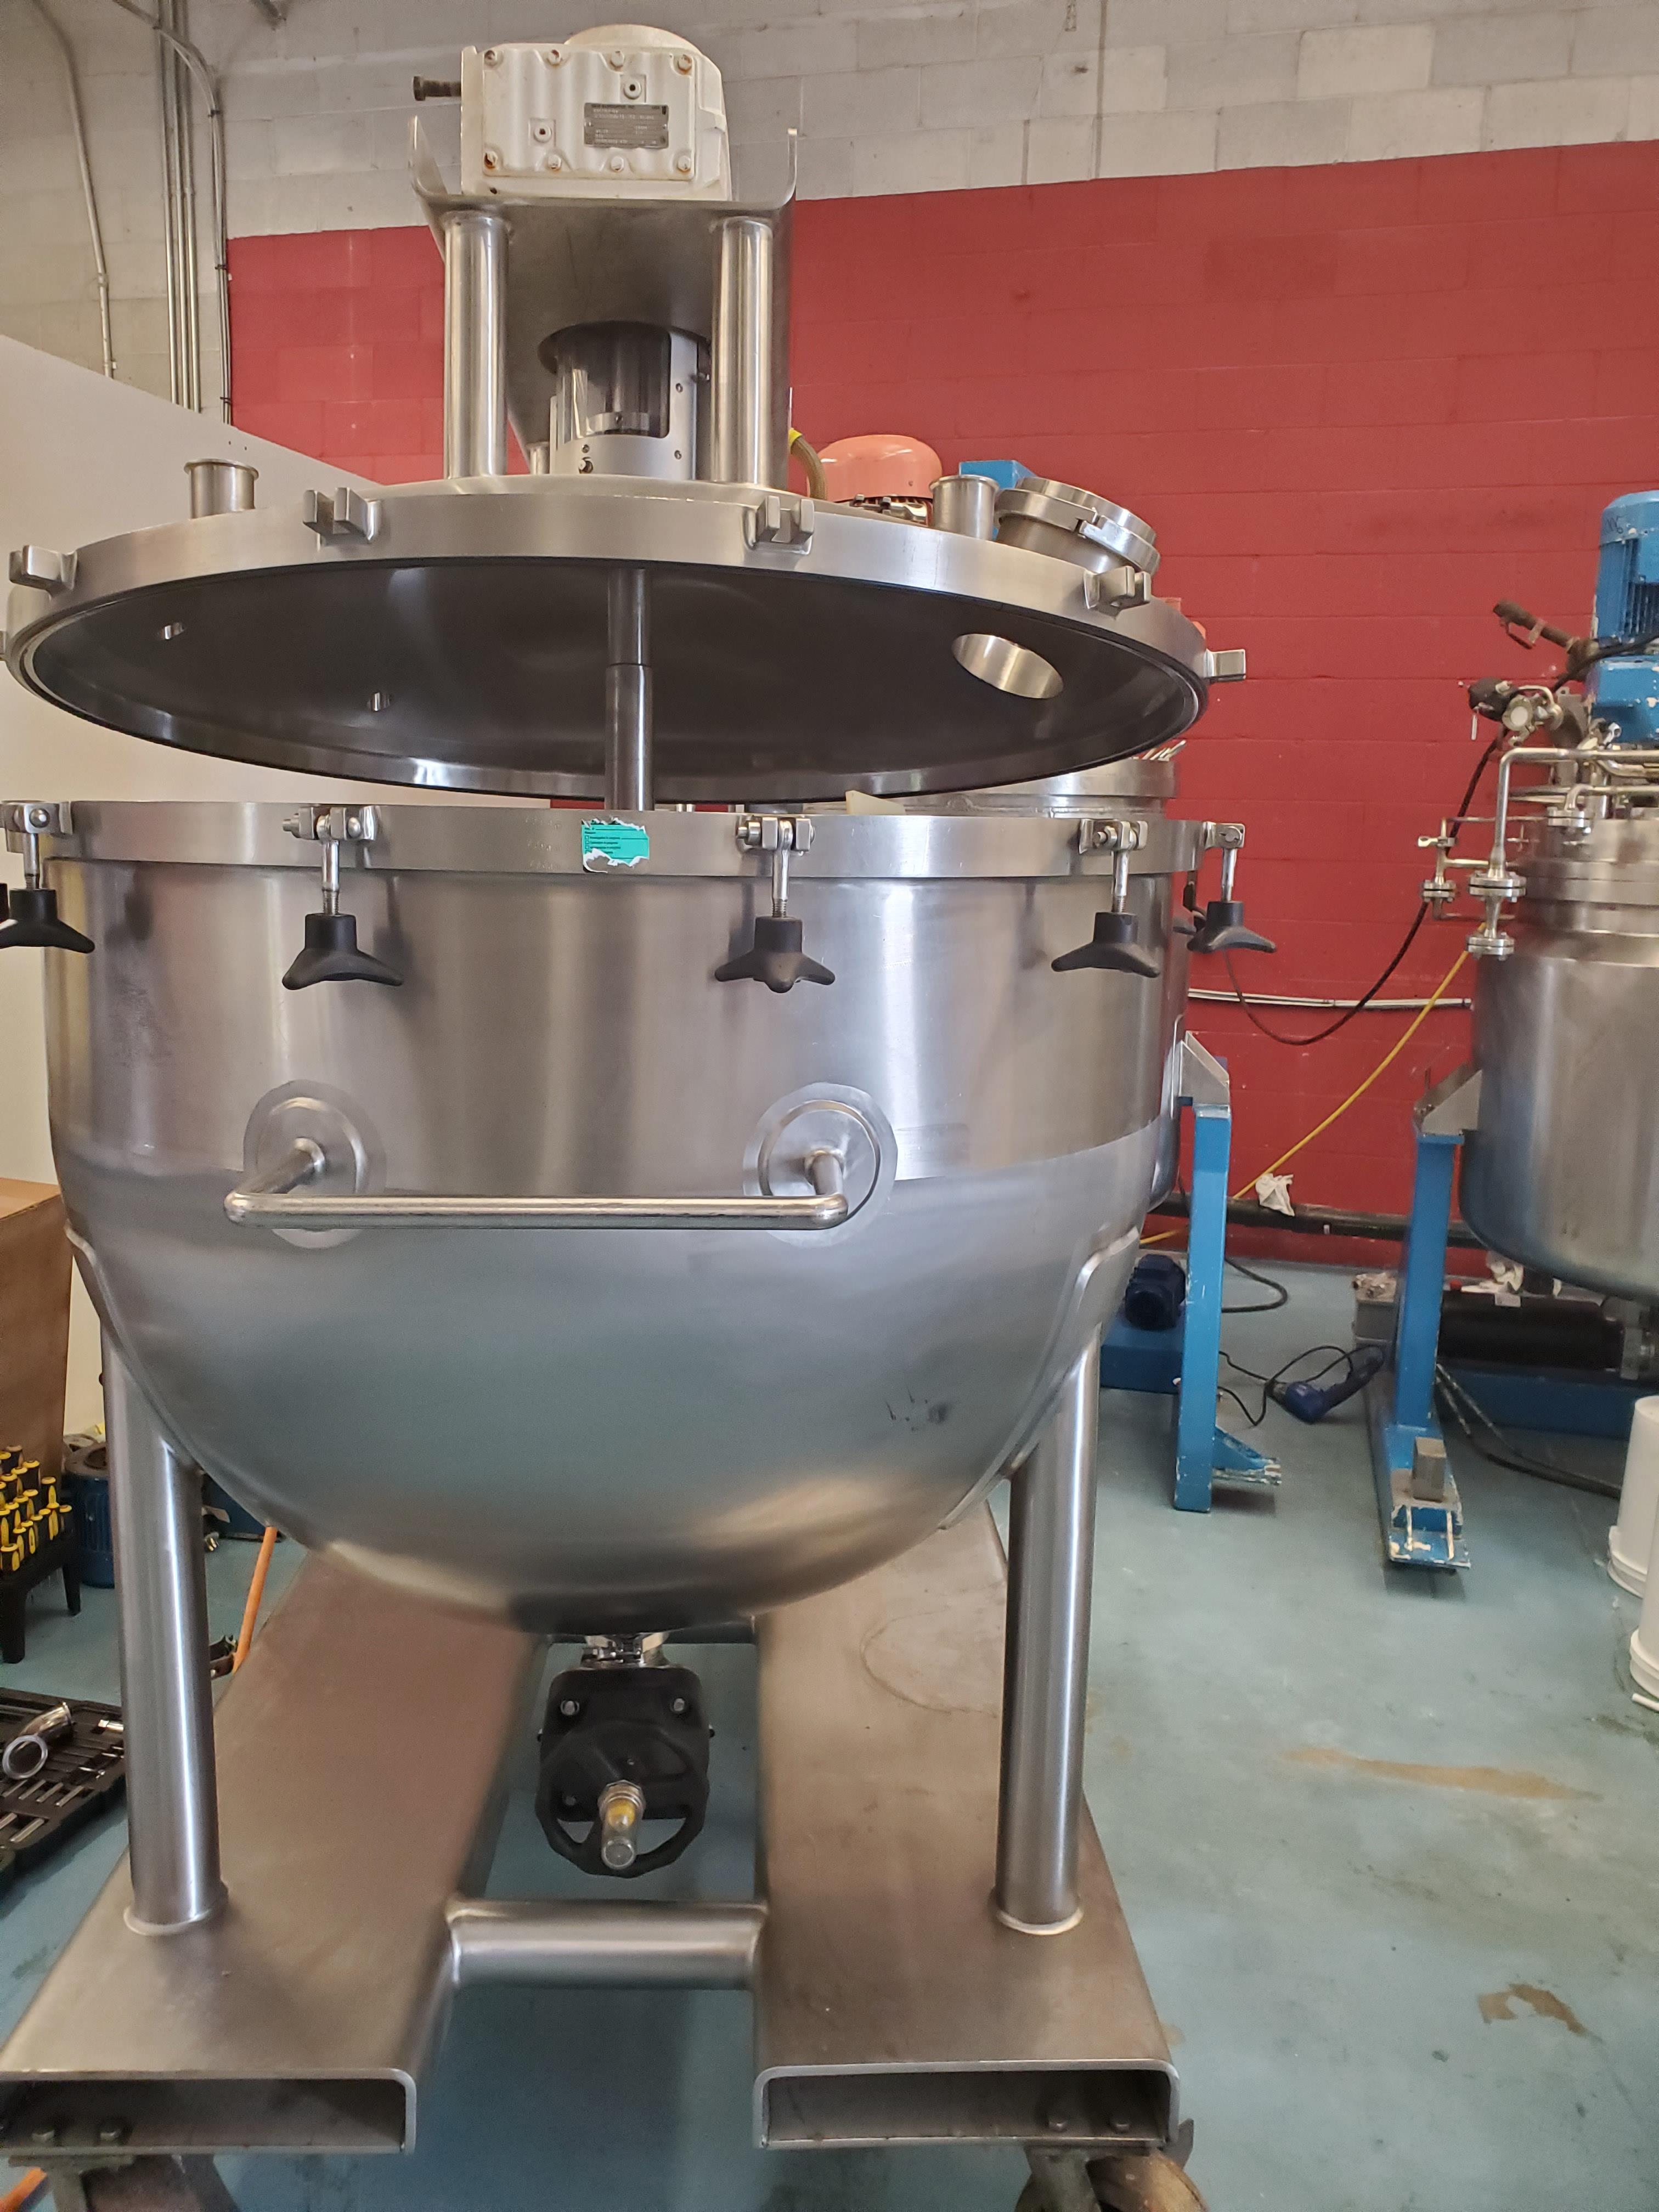 Lee 200 Gallon Stainless Steel Kettle with scrap agitation